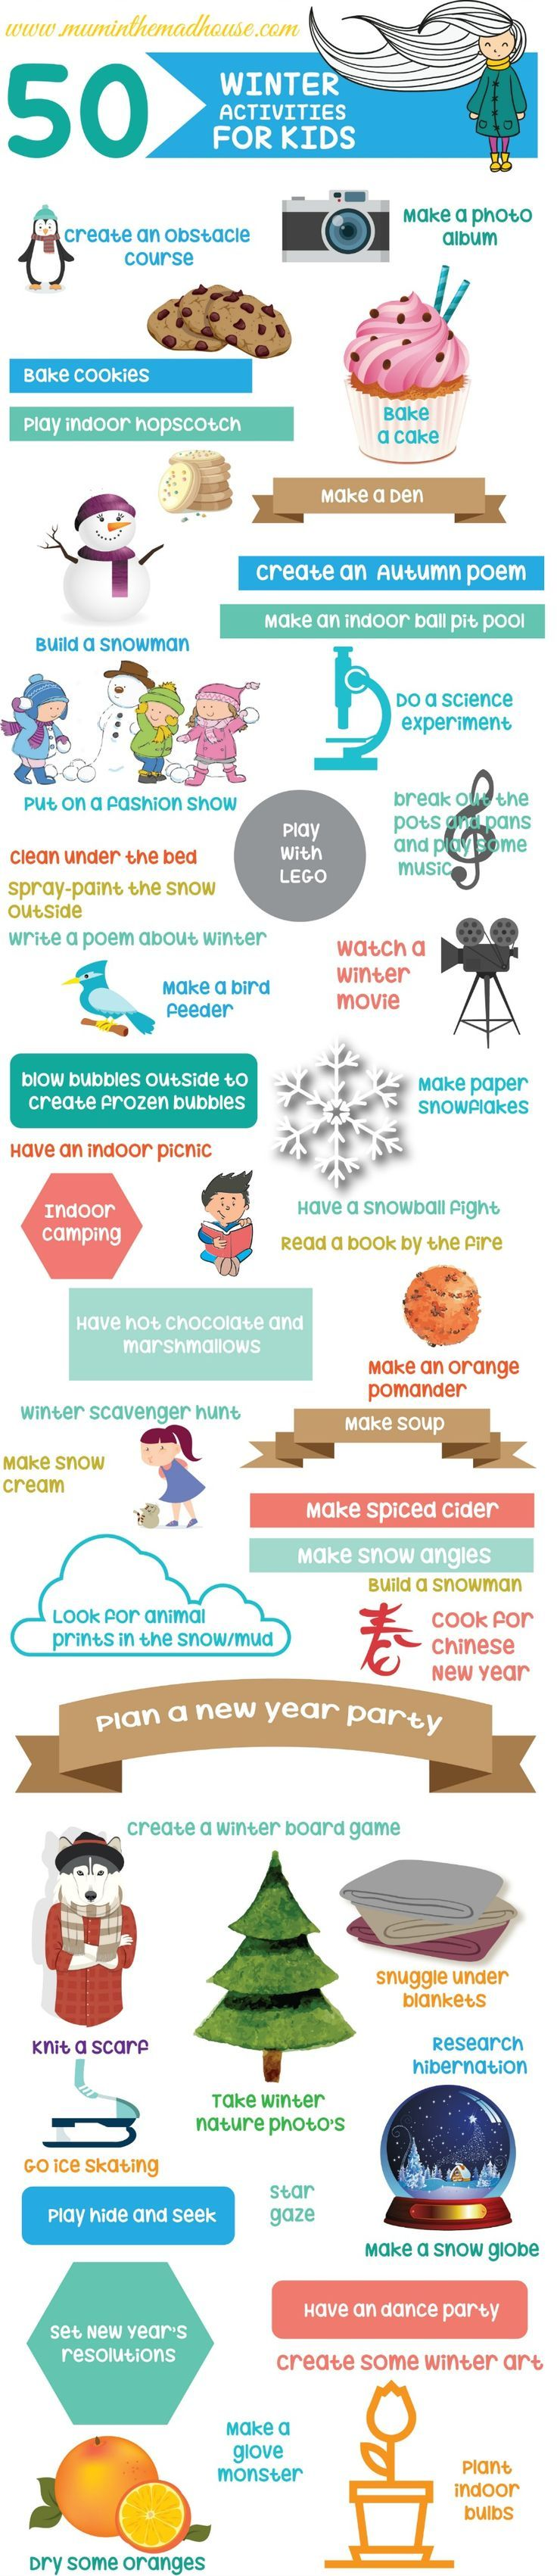 50 winter activities for kids.  50 low cost or no cost winter activities (indoor and outdoor) for all the family.